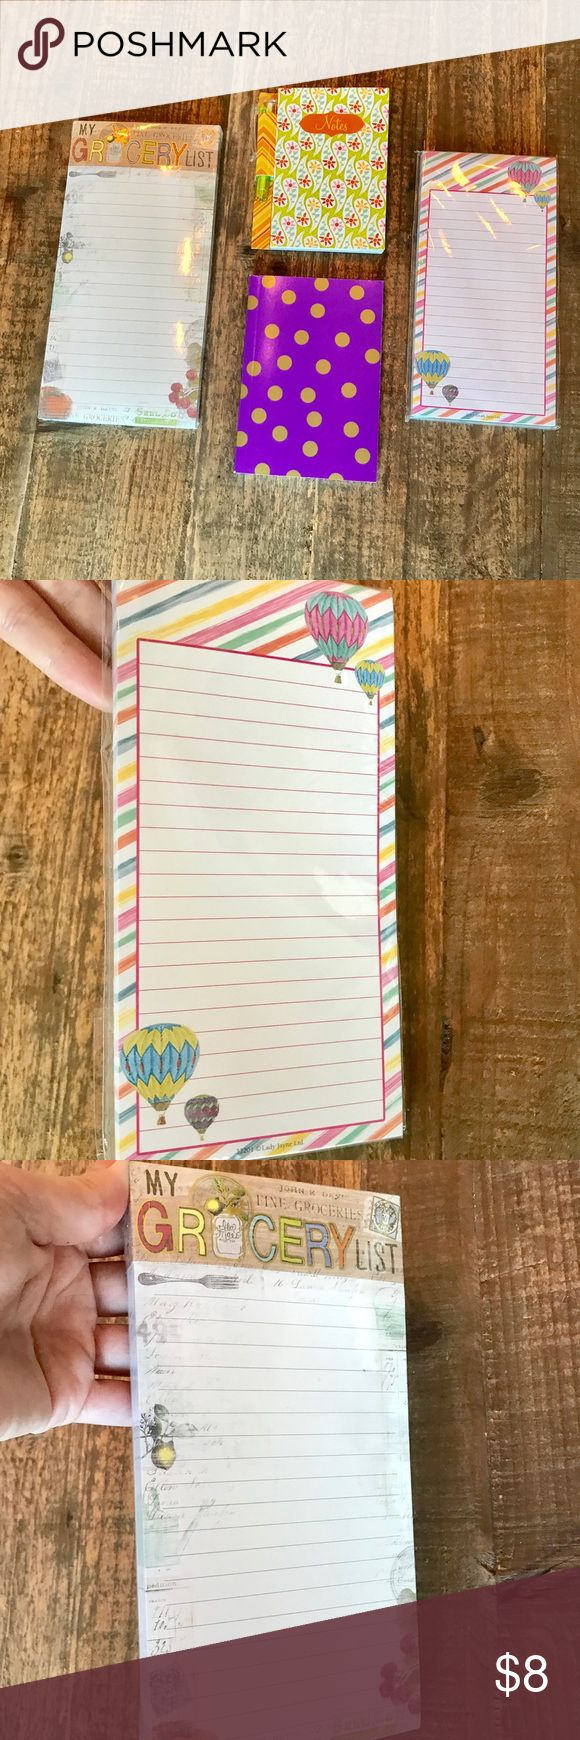 Bundle of note pads Never used, 2 still on packages. 1 magnetic grocery list pad, 1 small notebook with pen, 1 small note pad and 1 magnetic notepad. Accessories